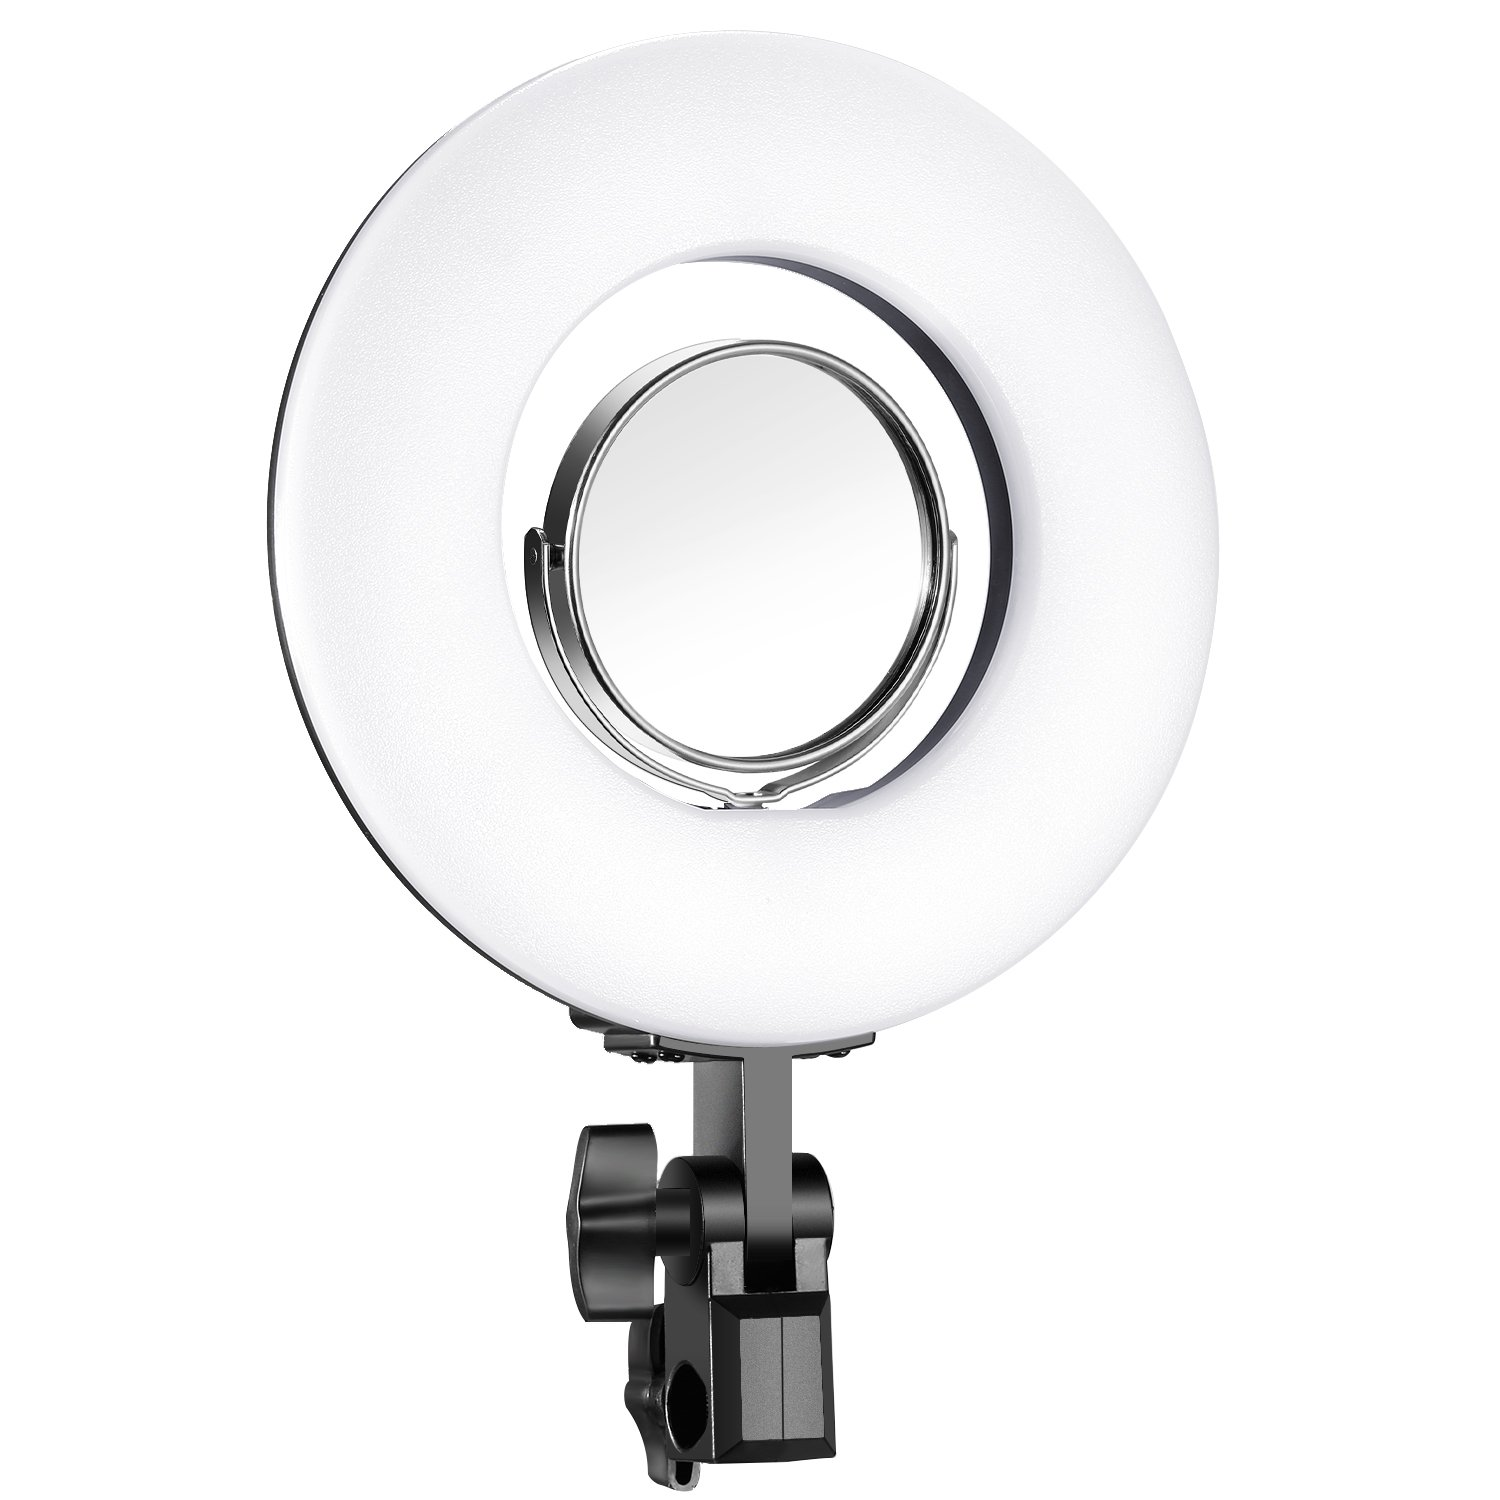 Neewer Dimmable Mini Led Light 7.7 Inches/19.5 Sin Fuente